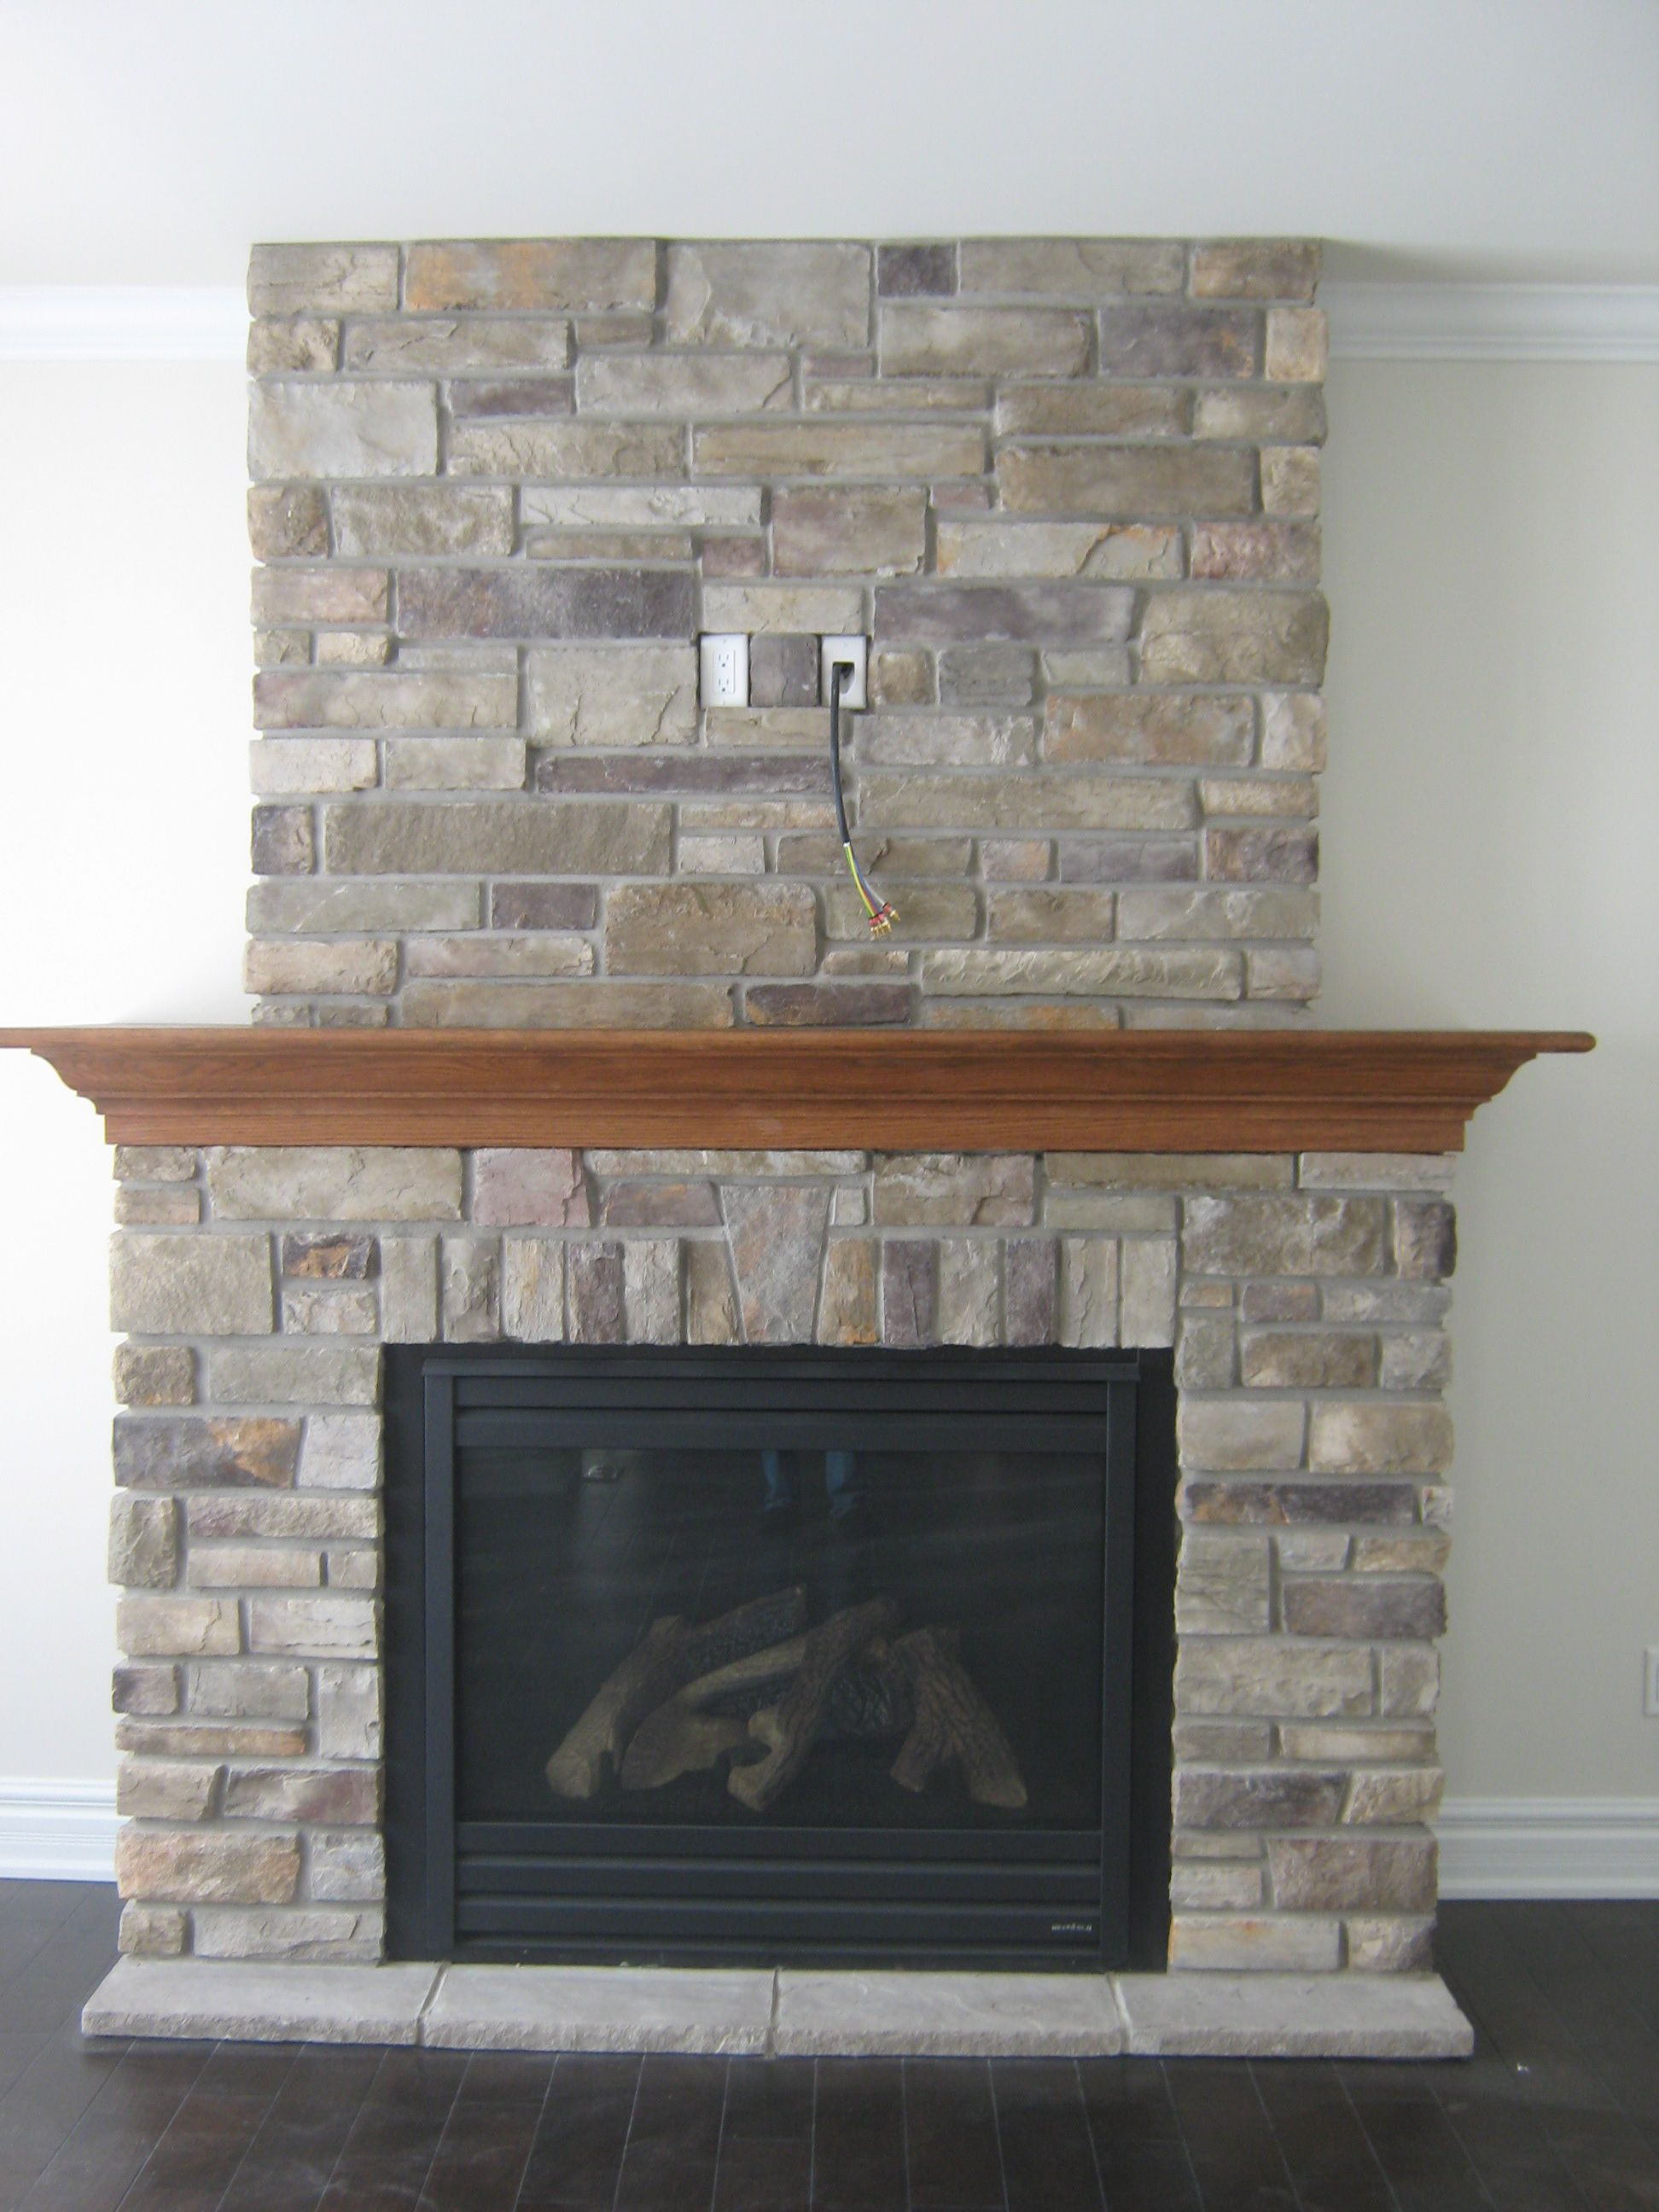 ionic grand photos elegant home calgary mantels pictures faux simple overmantel inspirational unique with cast fireplace stone of